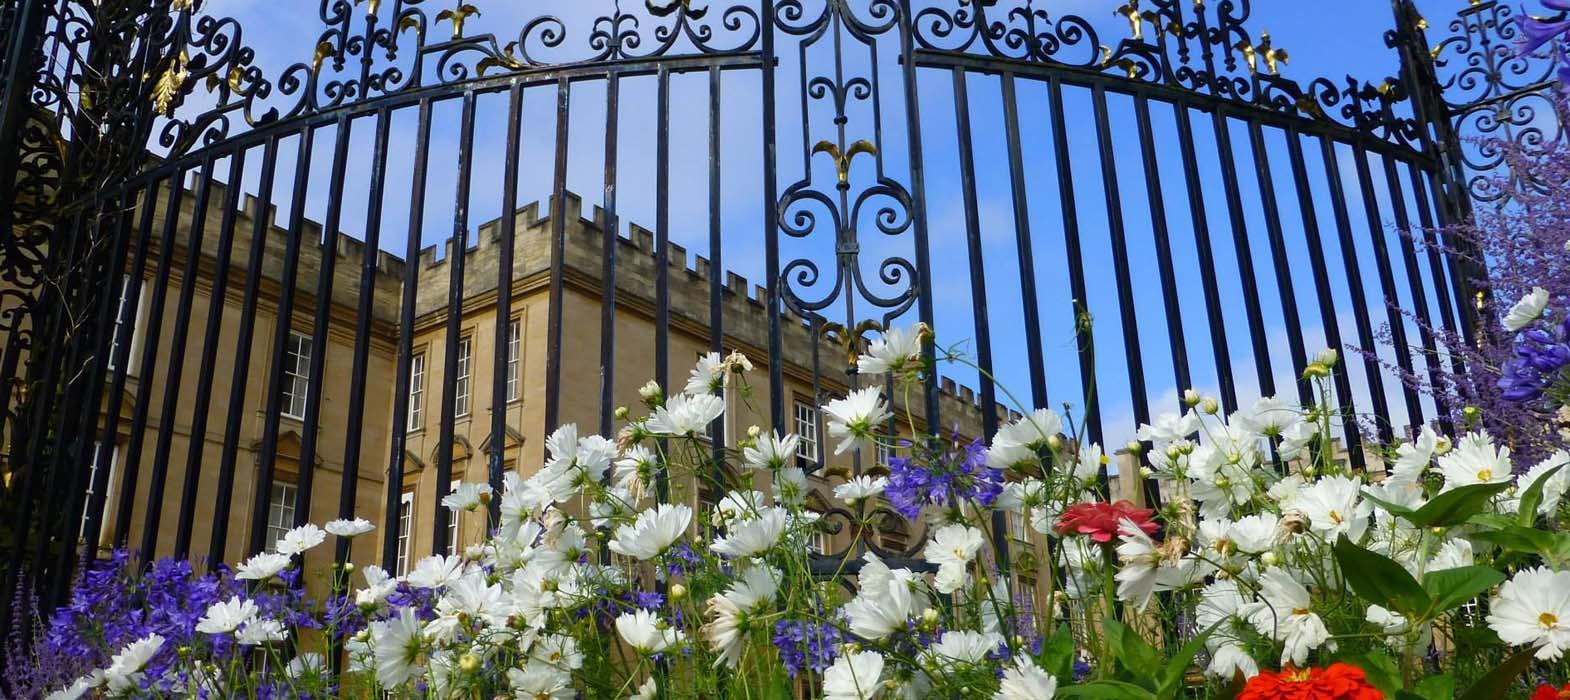 Summer flowers and the Gates